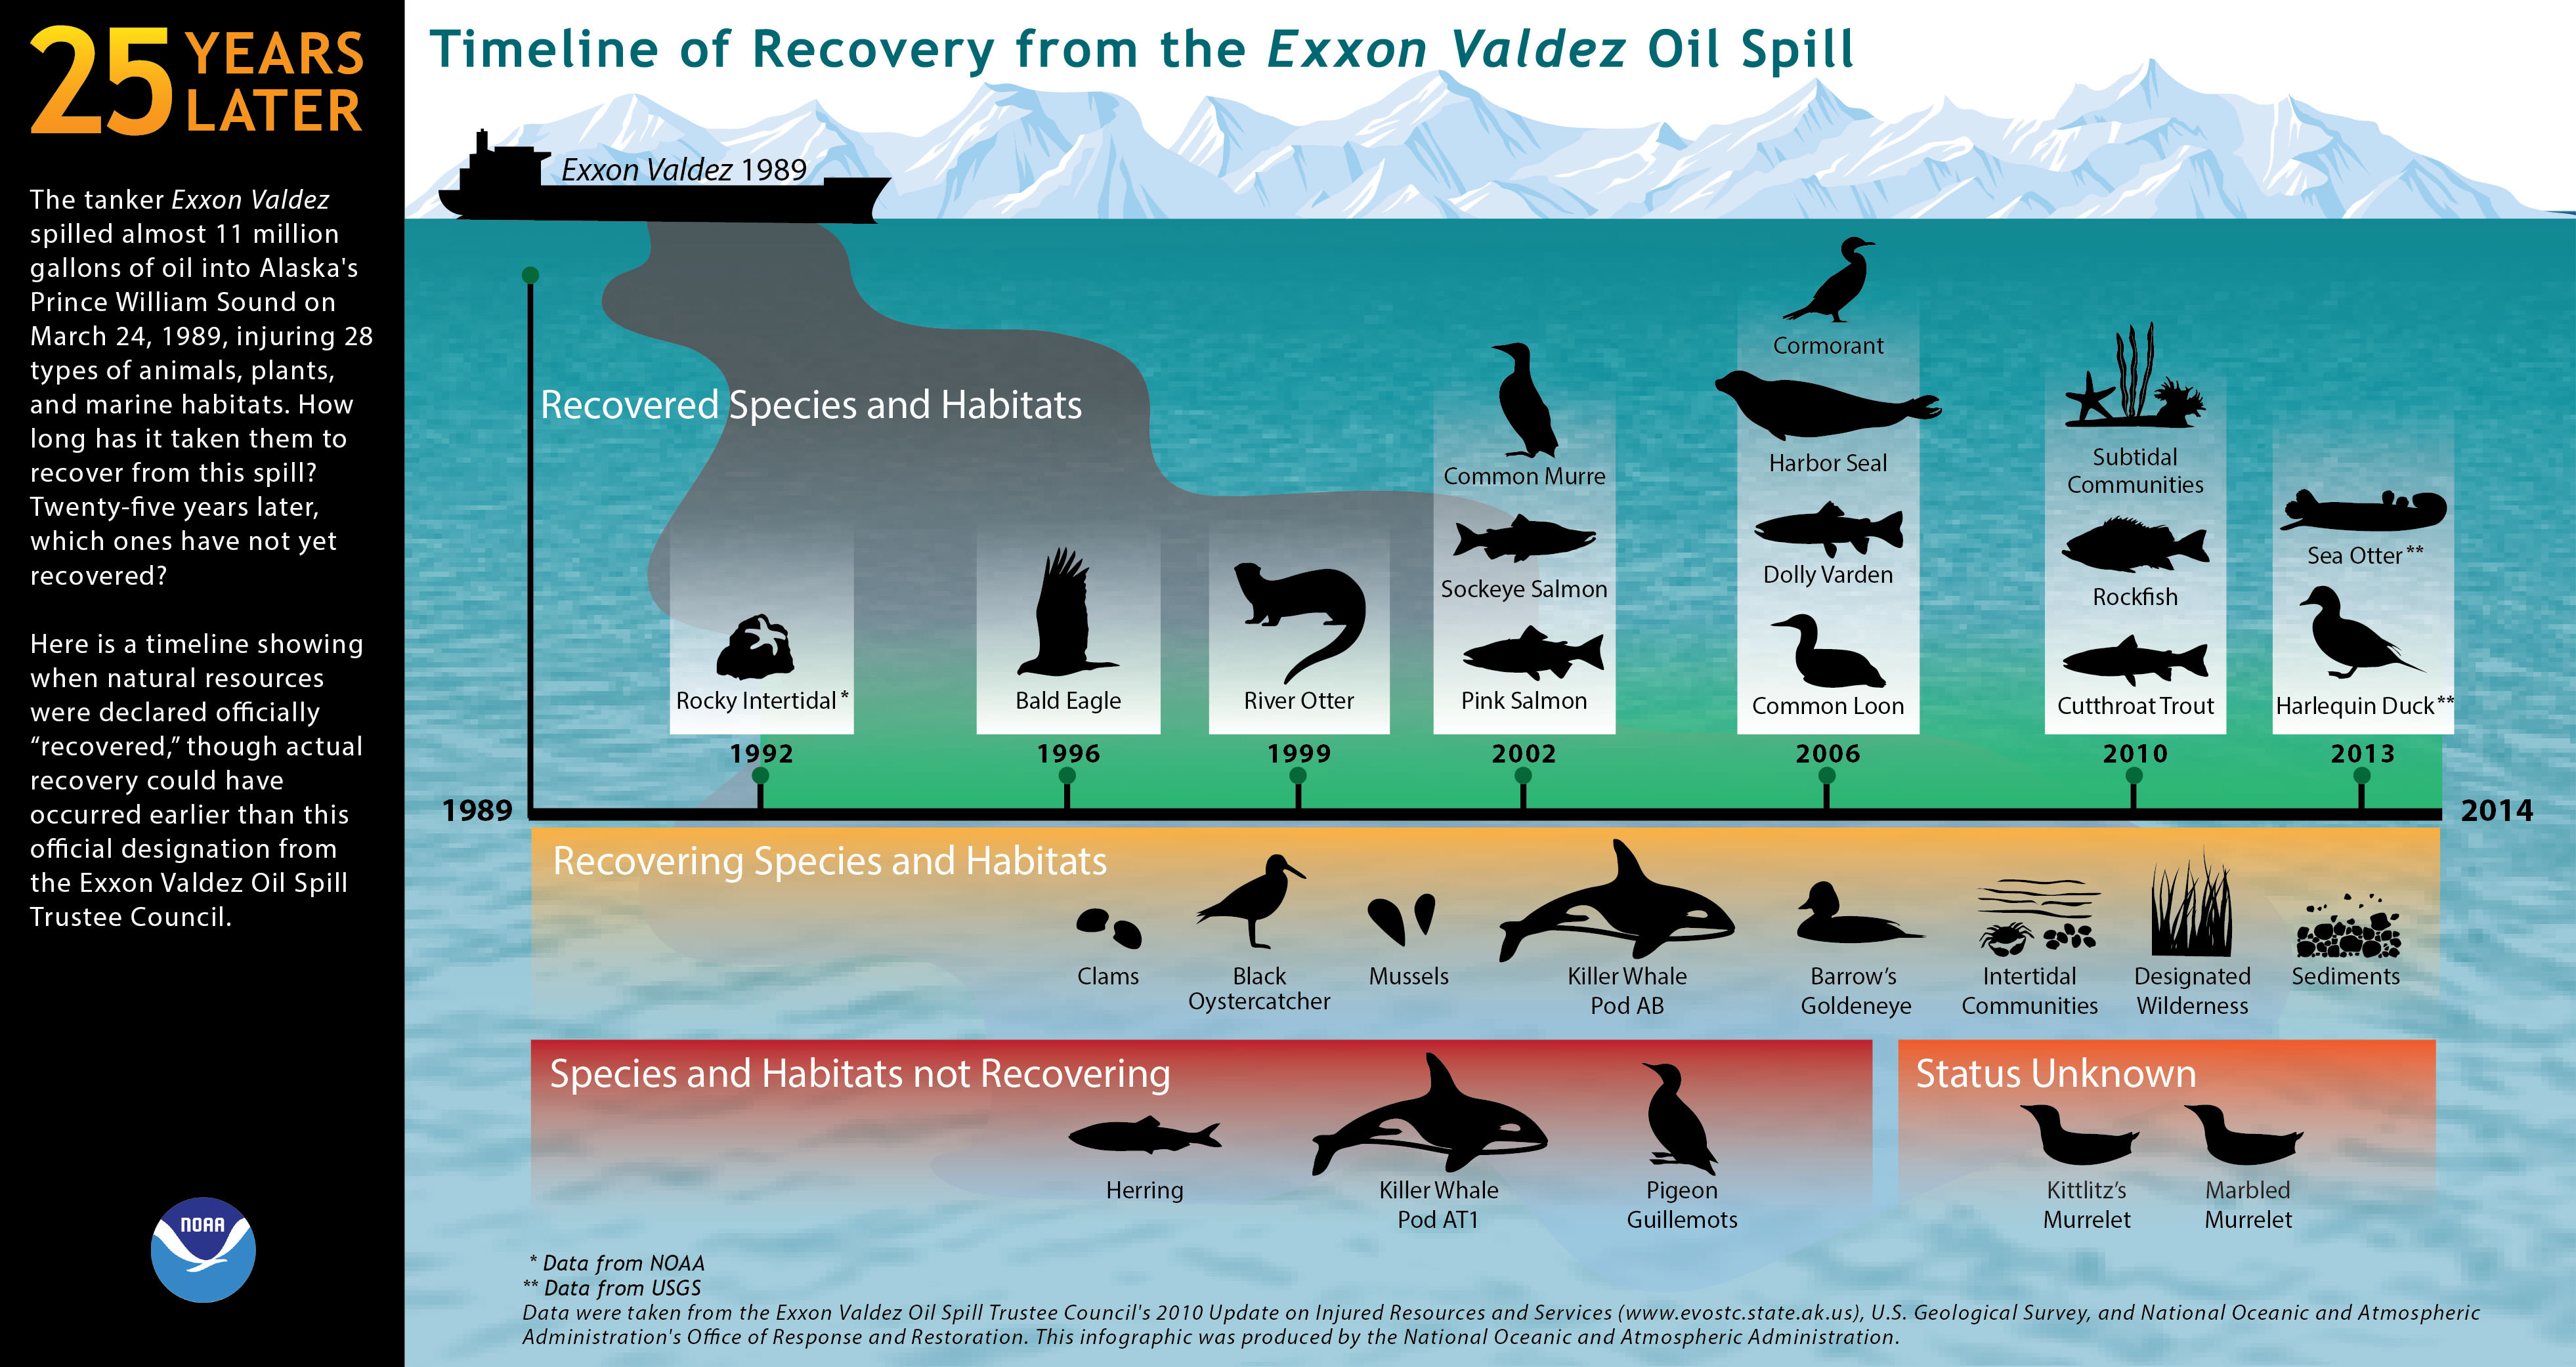 Oil-covered birds after the Exxon Valdez Oil Spill